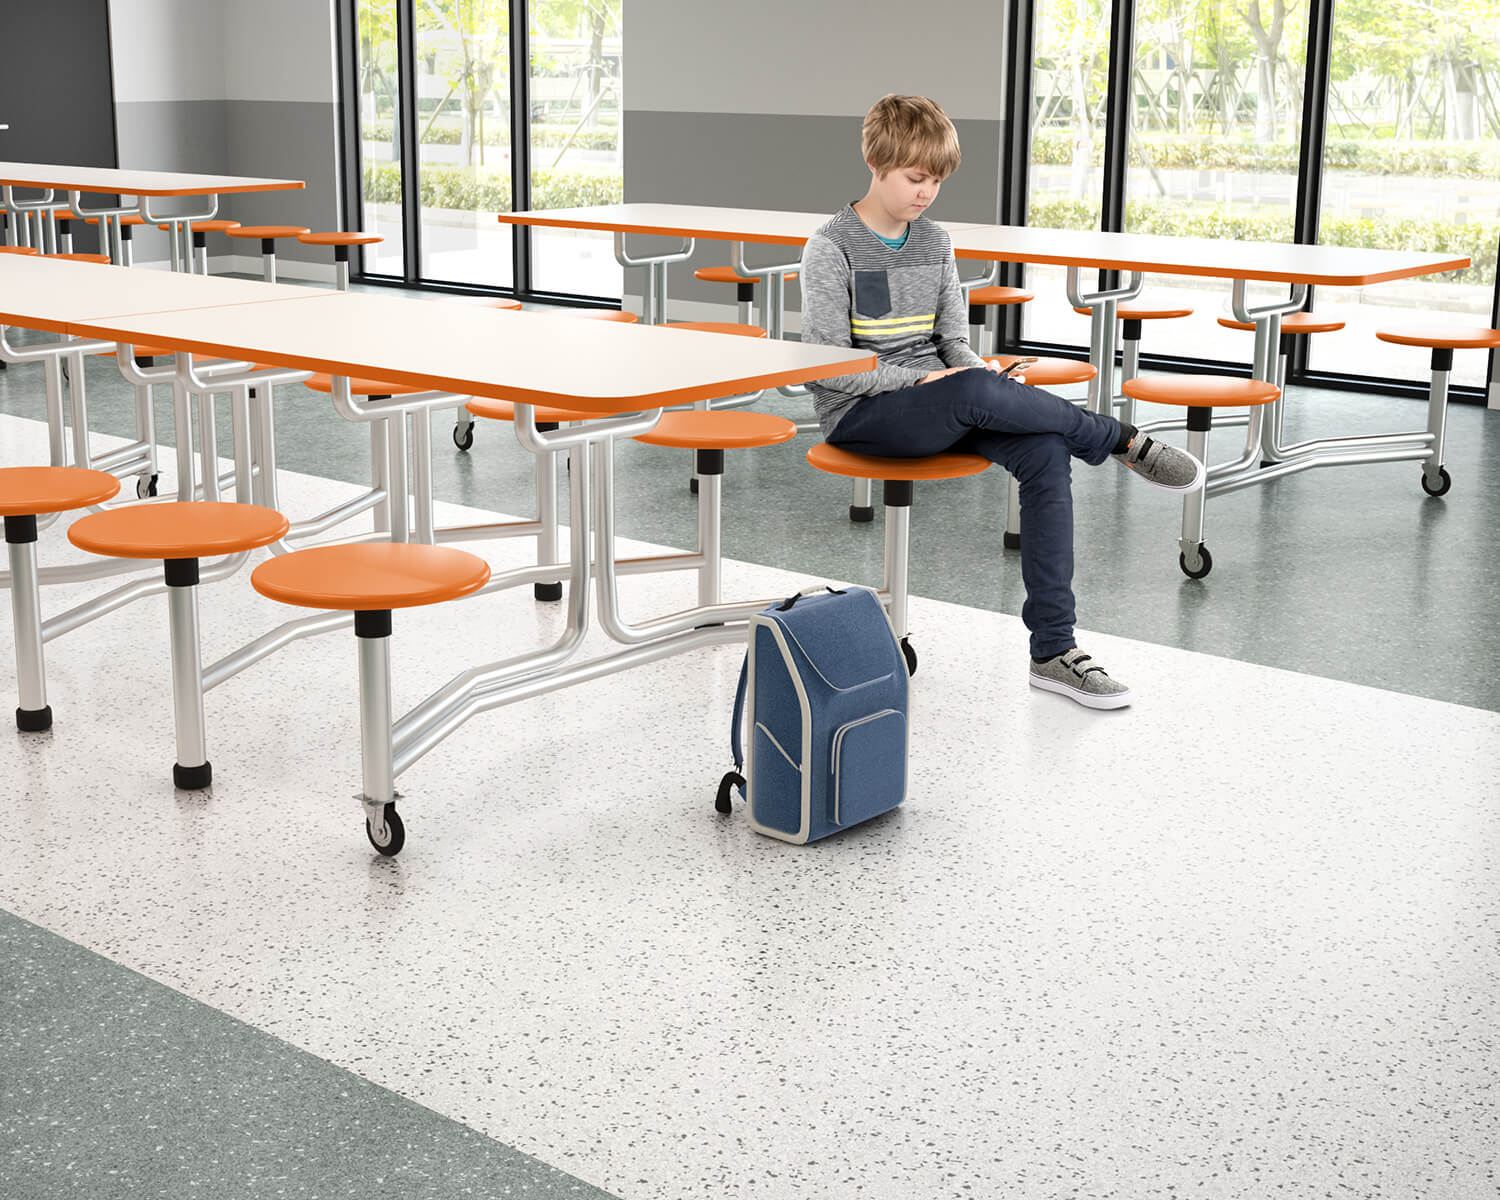 Boy sitting at white table with orange seats